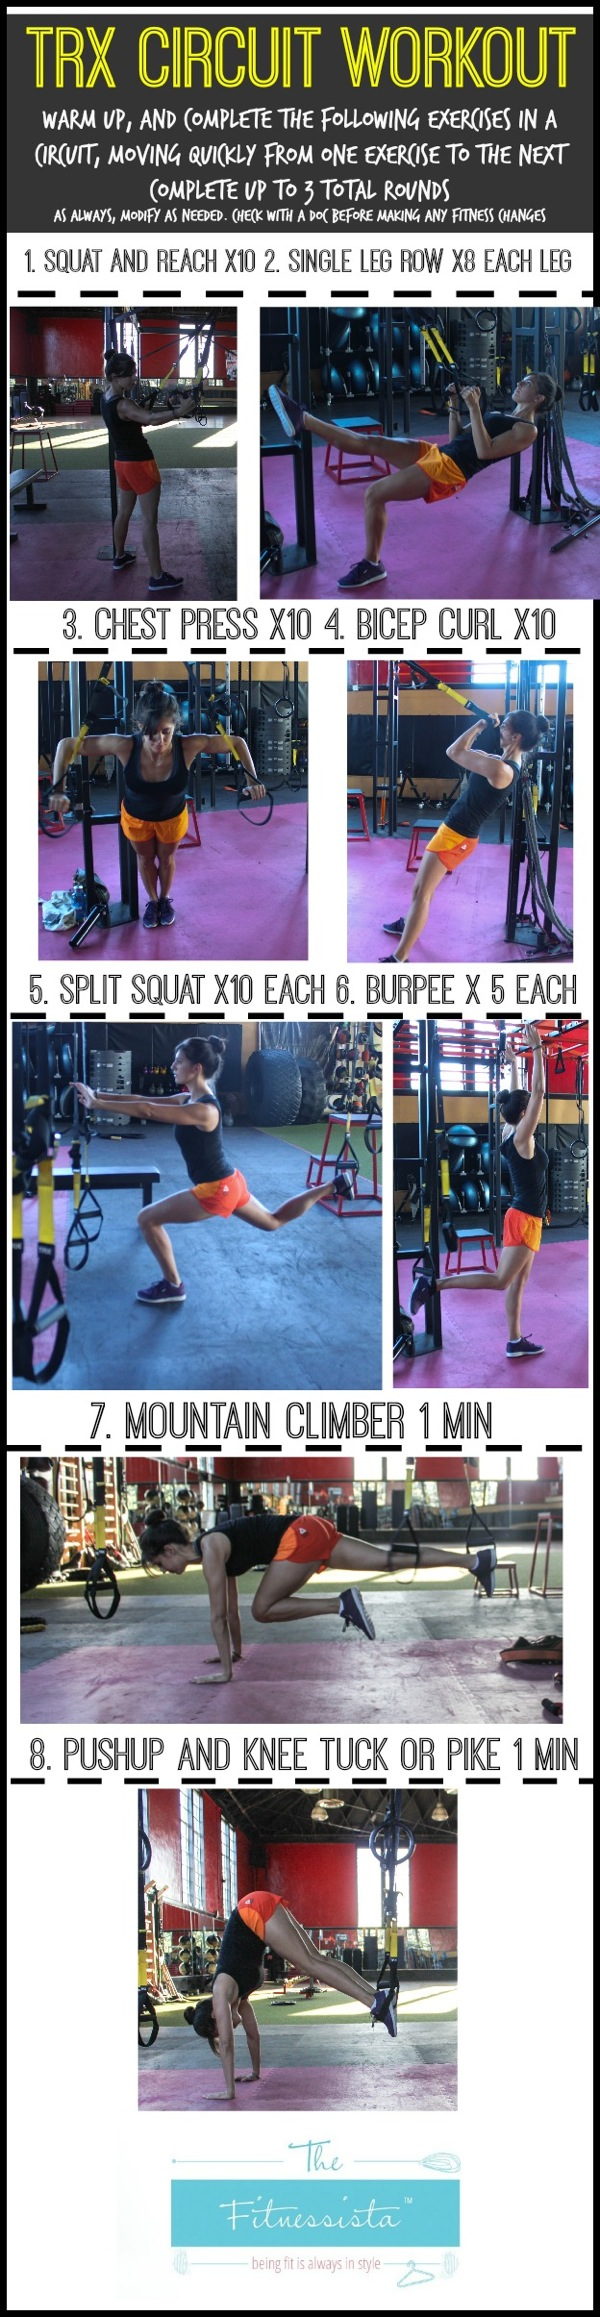 TRX circuit workout - get a killer strength and cardio workout that also works your core! fitnessista.com | #trxworkout #trx #trxhowto